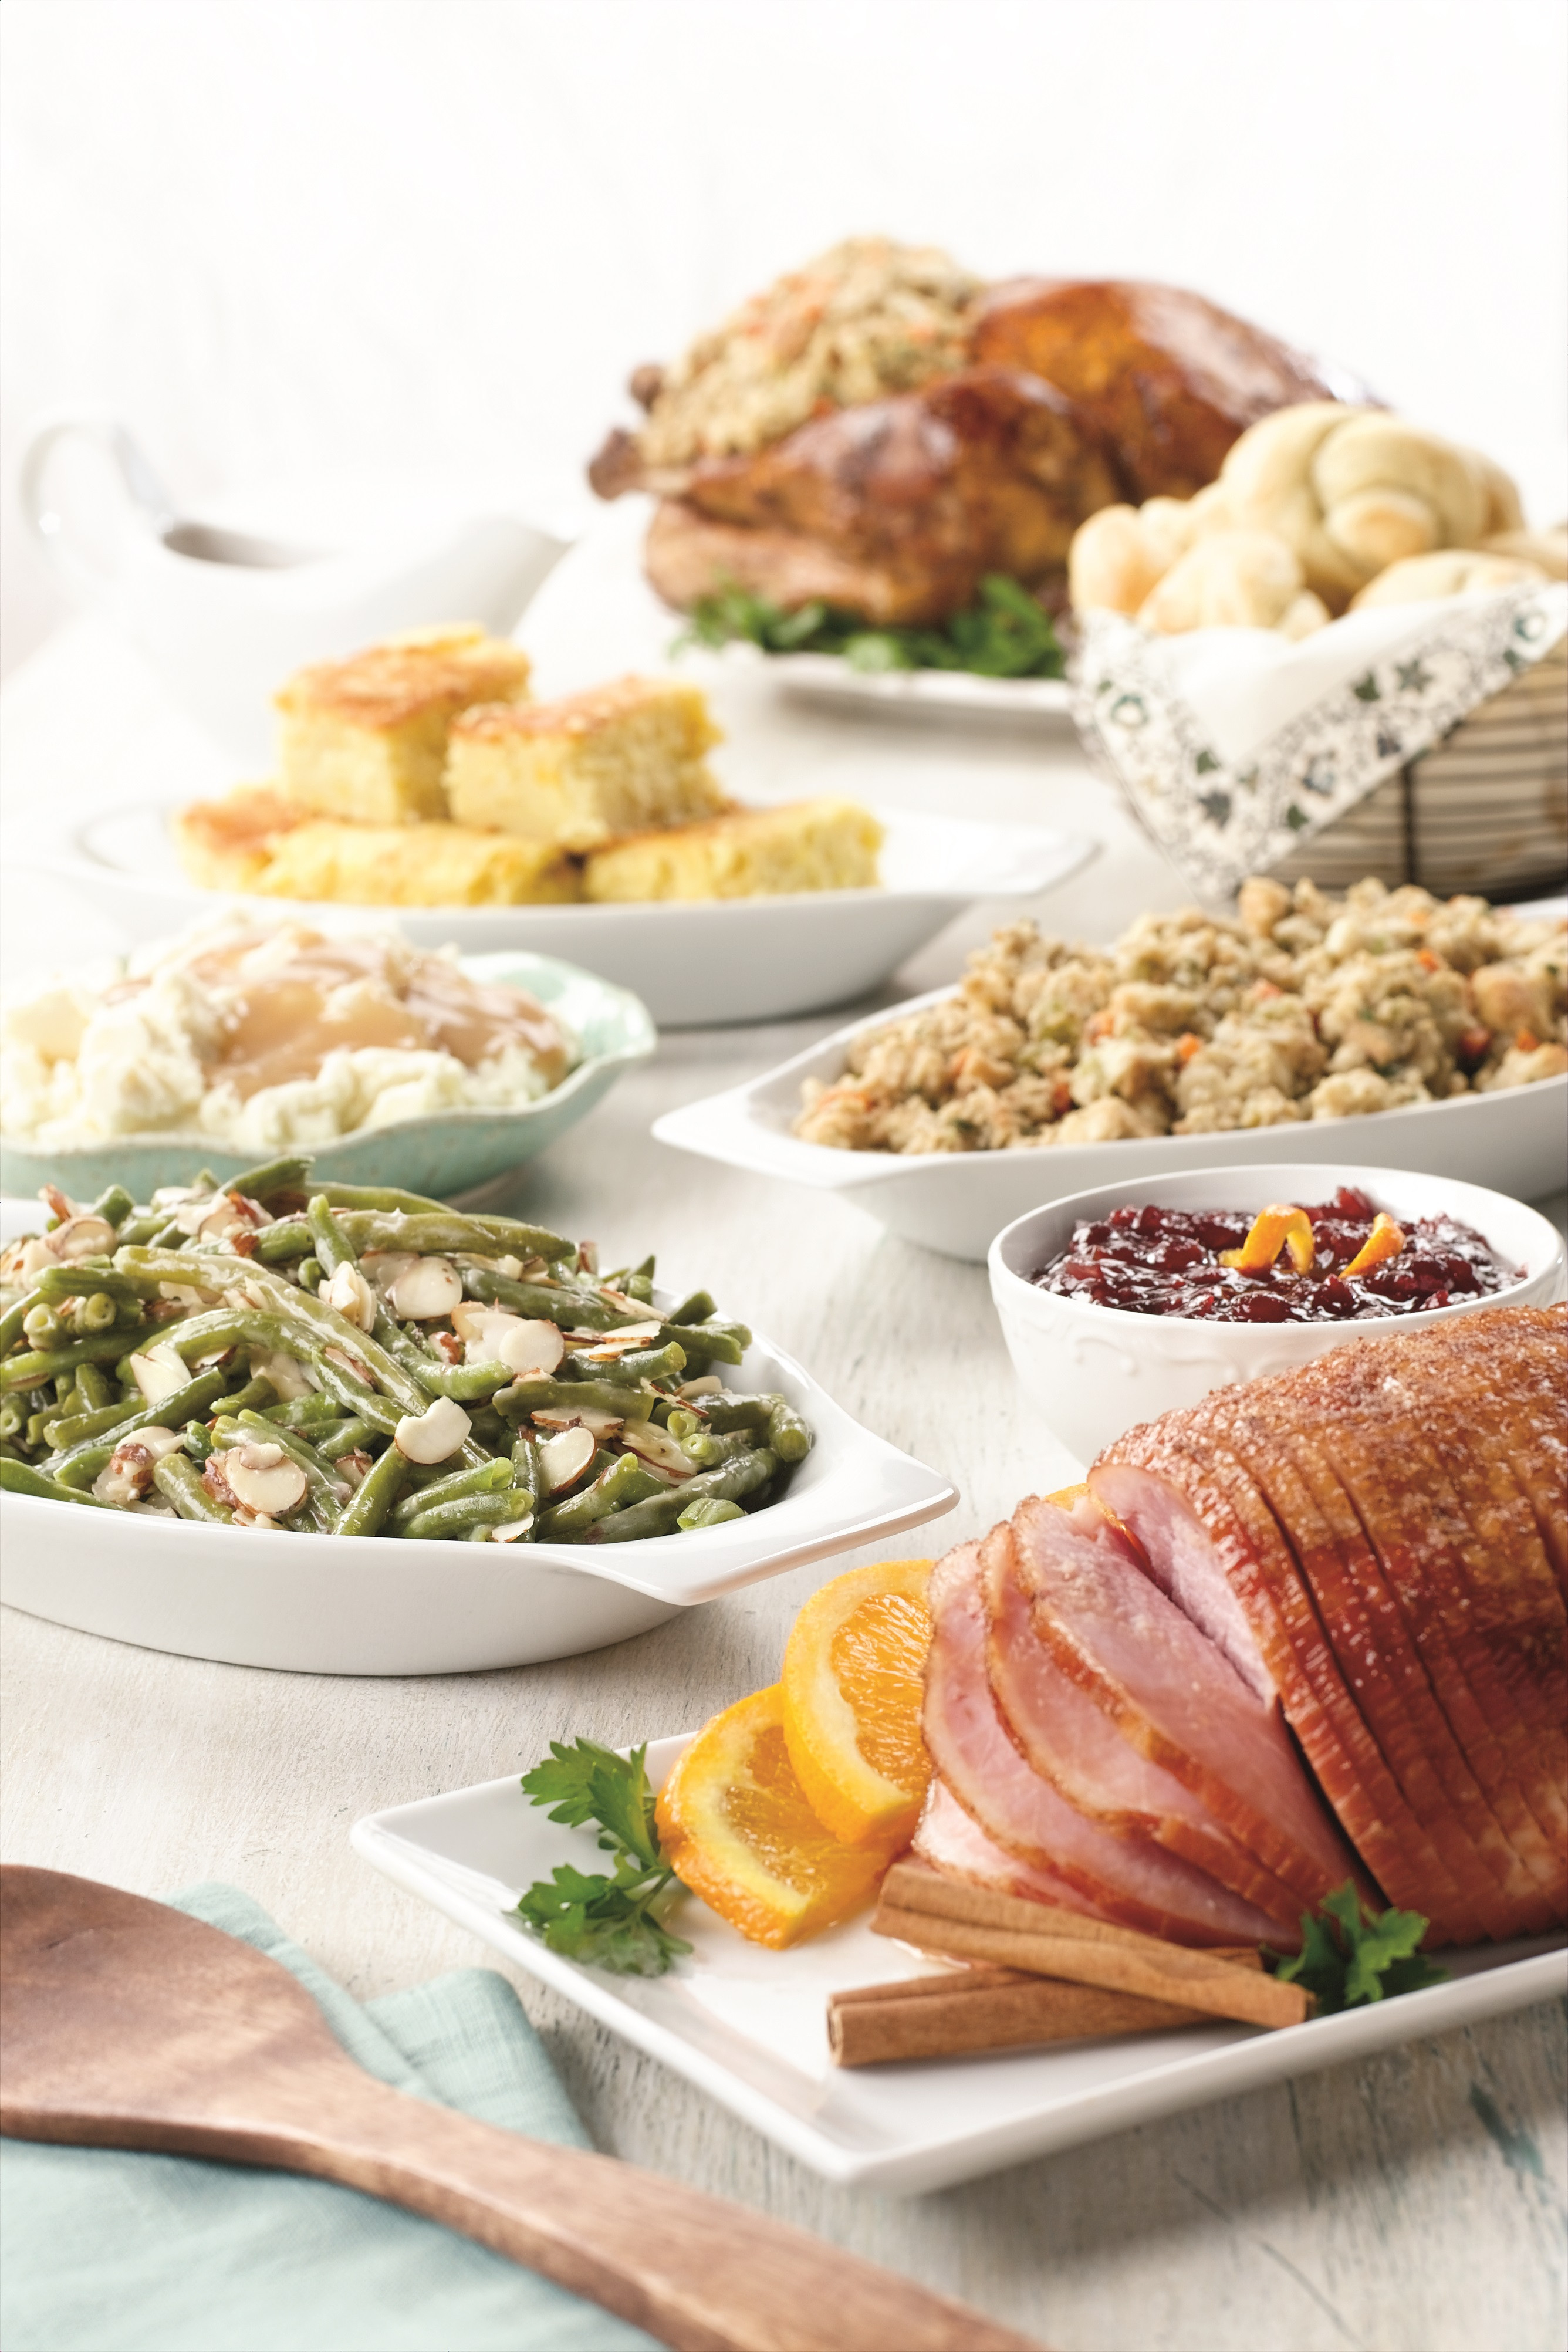 Fresh Market Thanksgiving Dinner  The Fresh Market Provides Holiday Meal Options for an